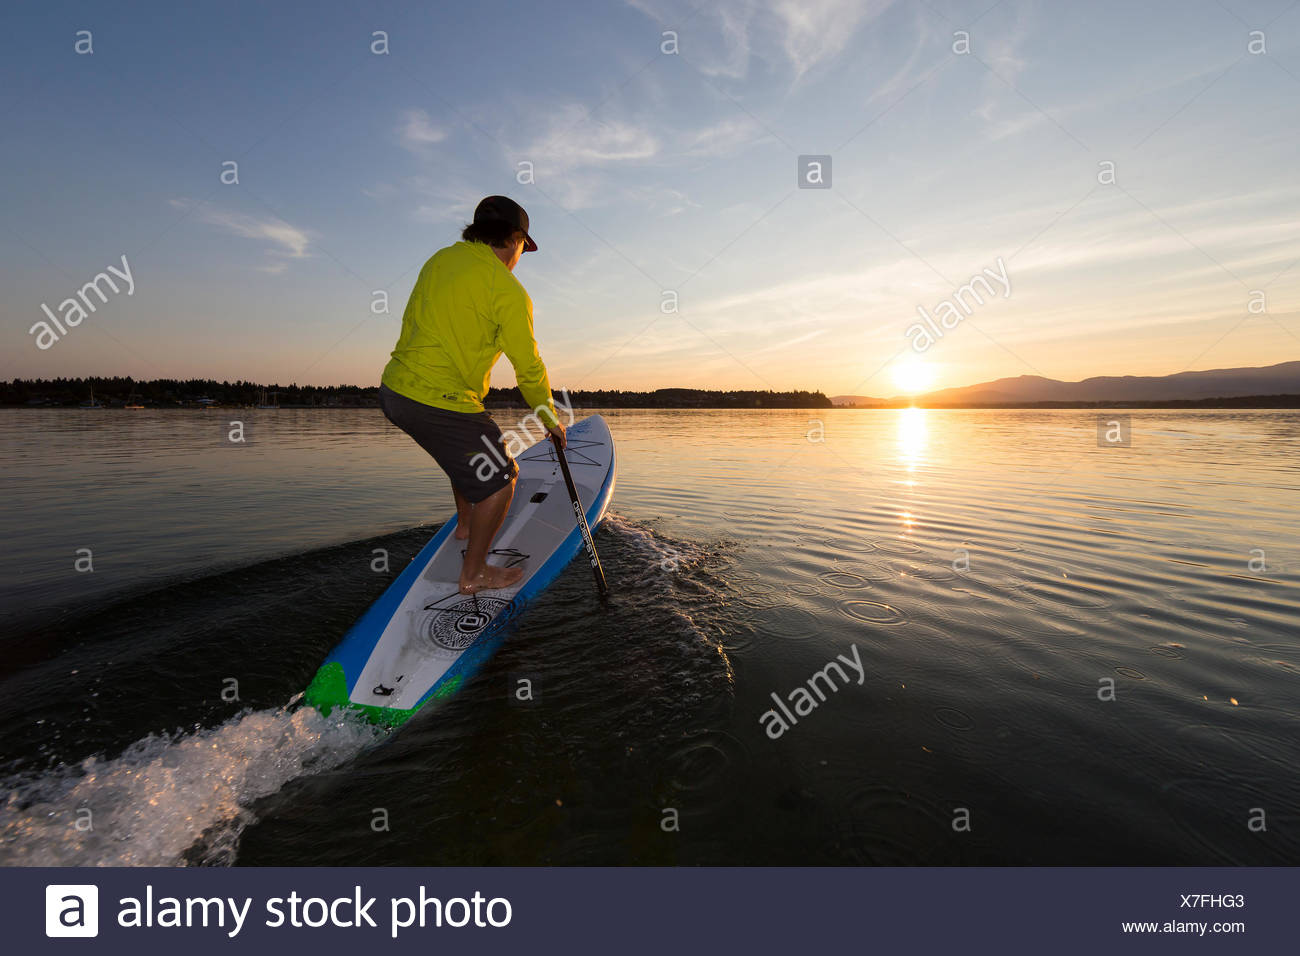 A Stand up paddleboarder launches into the sunset waters off of Goose Spit Regional Park.  Comox, The Comox Valley, Vancouver Island - Stock Image